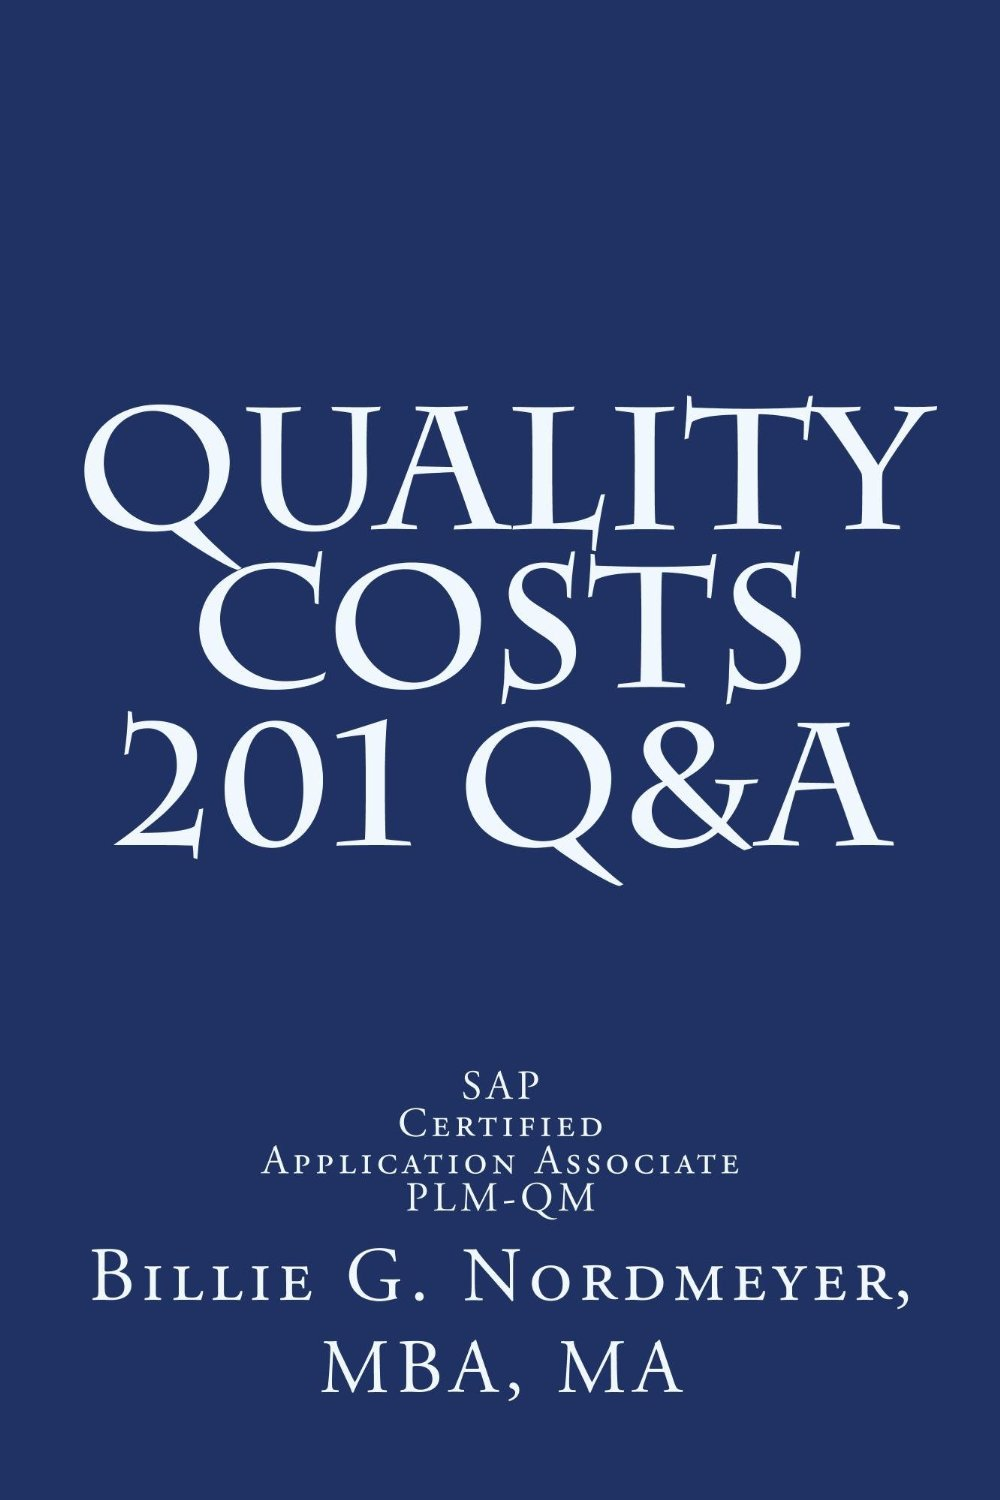 Quality Costs 201 Q&A: SAP Certified Application Associate - Quality Management free download